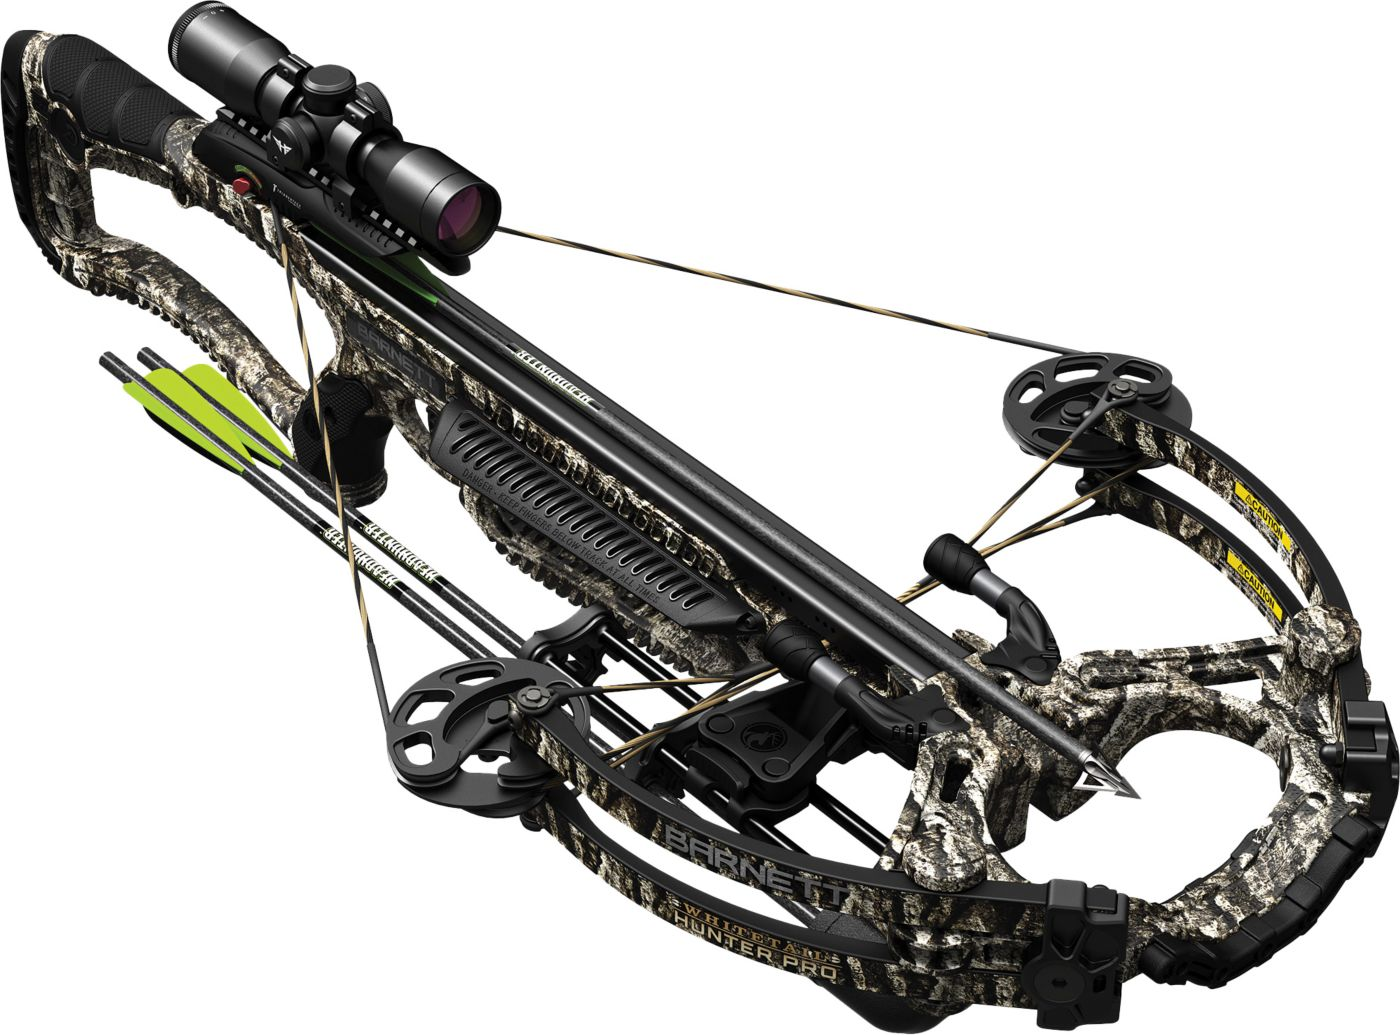 Barnett Whitetail Pro STR Crossbow Package - 405 fps